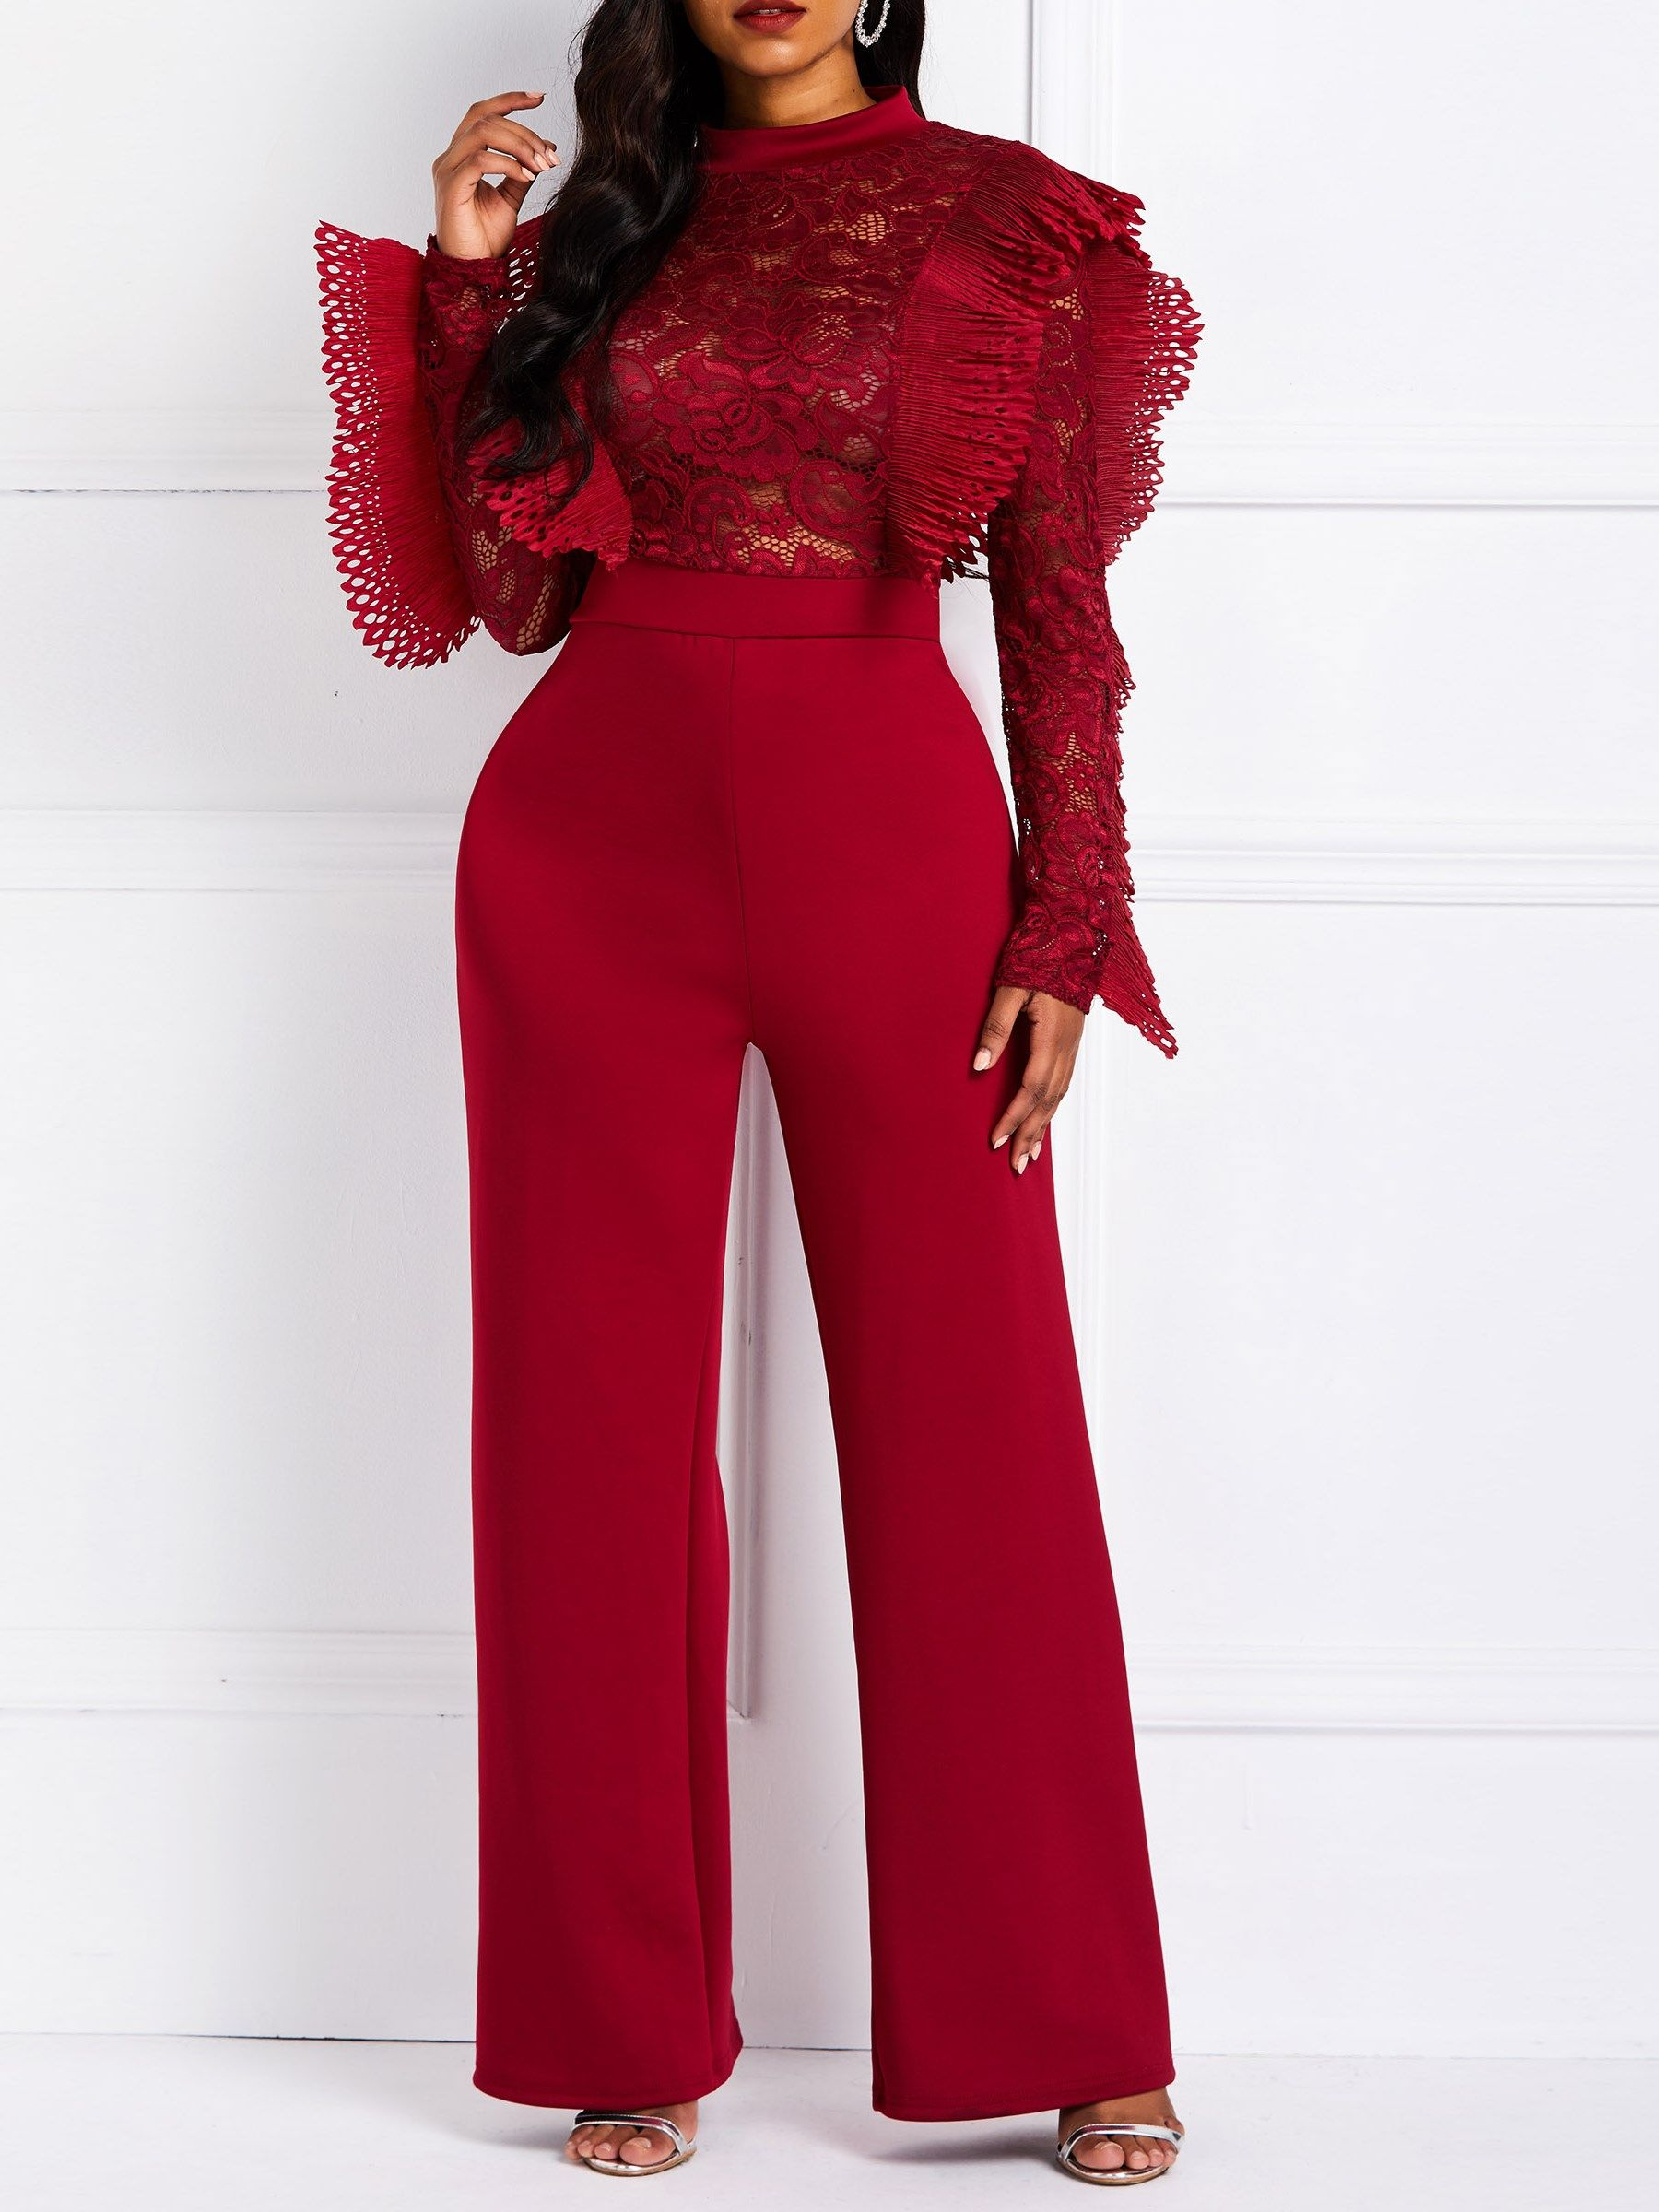 b2b54ccd1867 Casual Full Length Plain Straight High-Waist Jumpsuits Casual Full Length  Plain Straight High-Waist Jumpsuits Casual Full Length Plain Straight  High-Waist ...